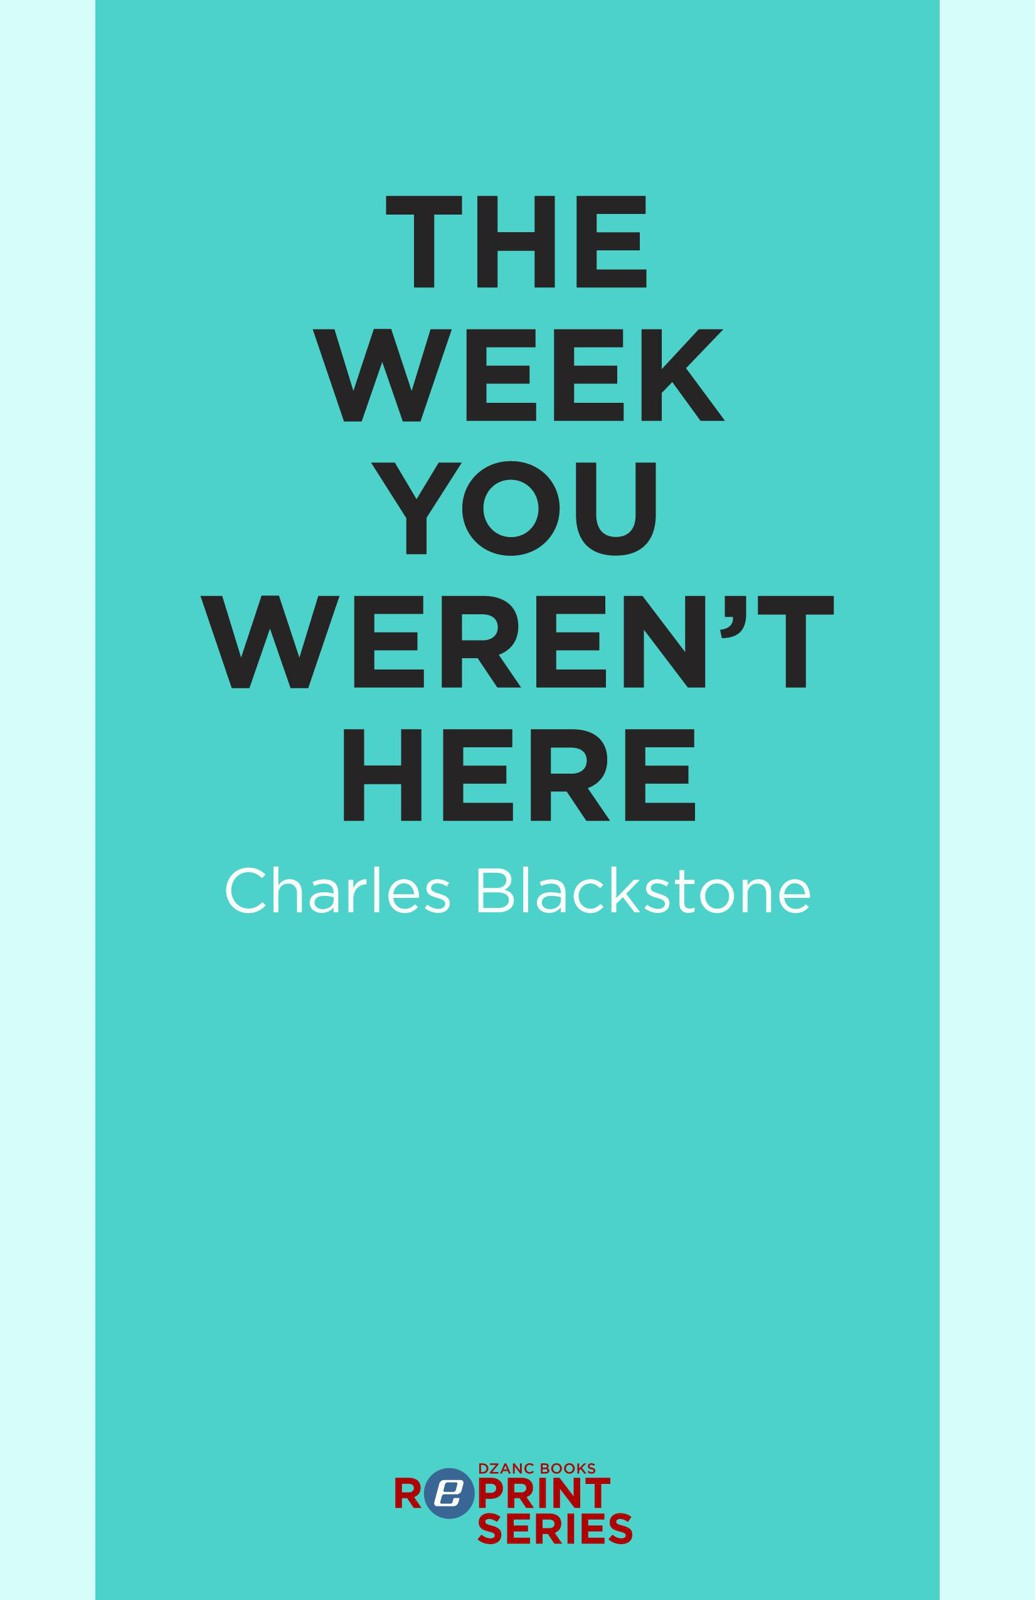 The Week You Weren't Here